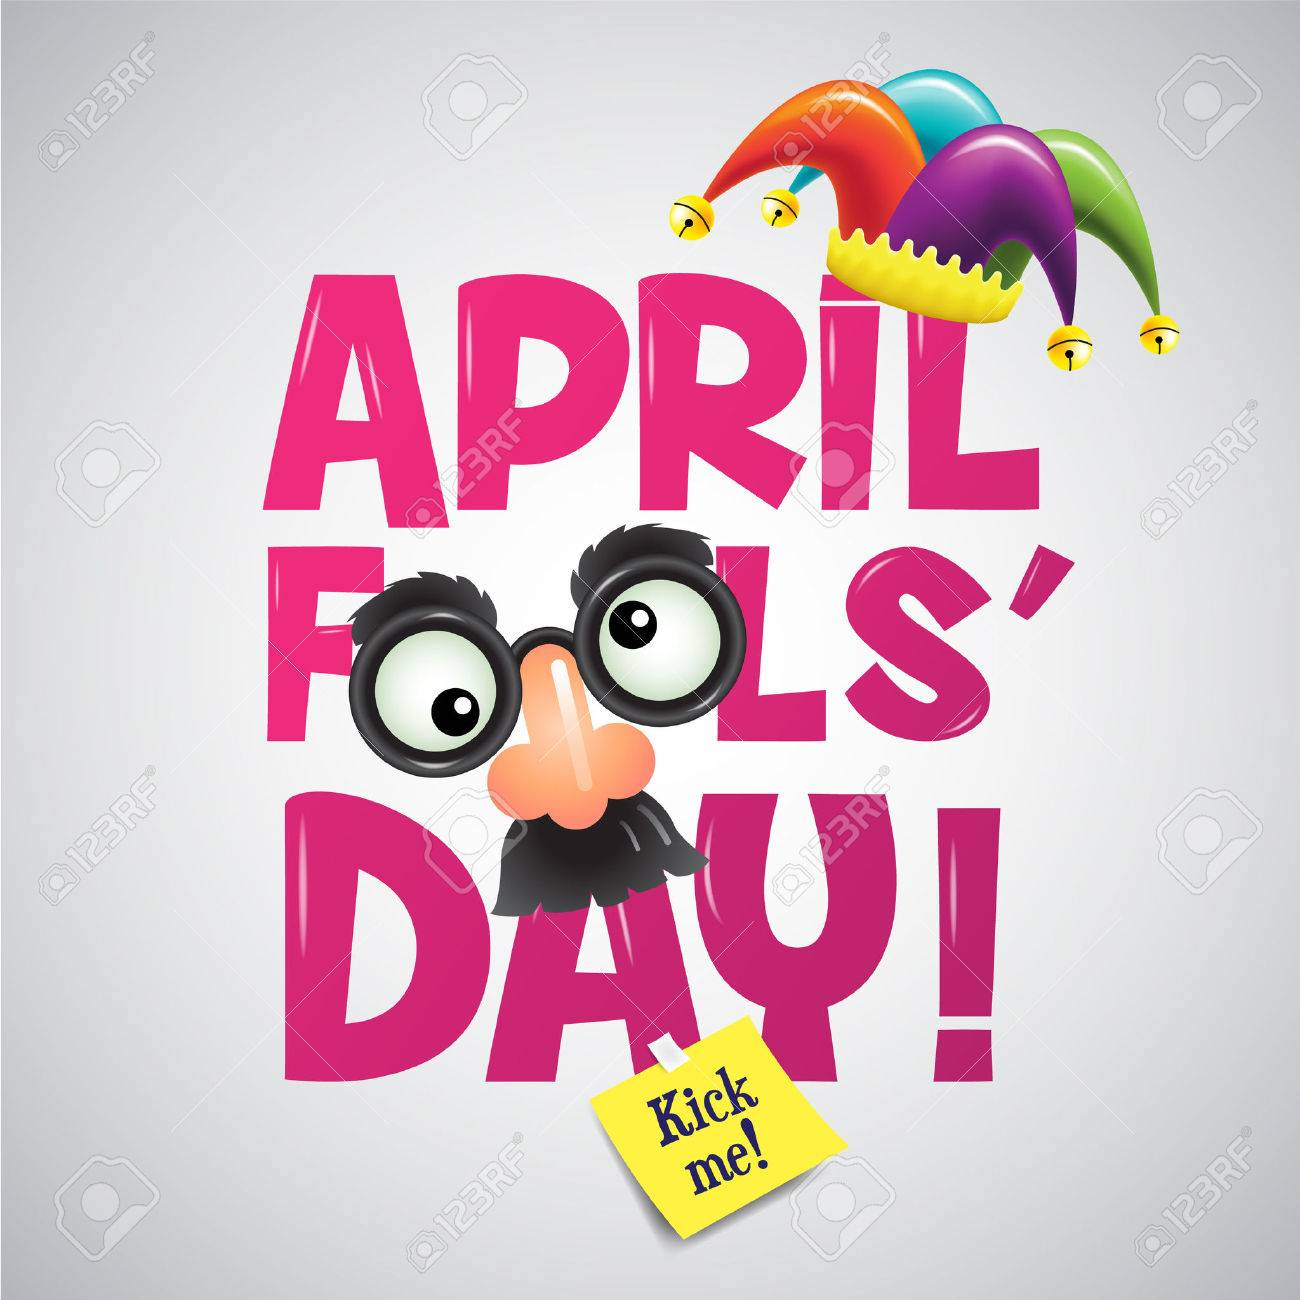 April fool's day, Typography, Colorful, vector illustration. - 74156356